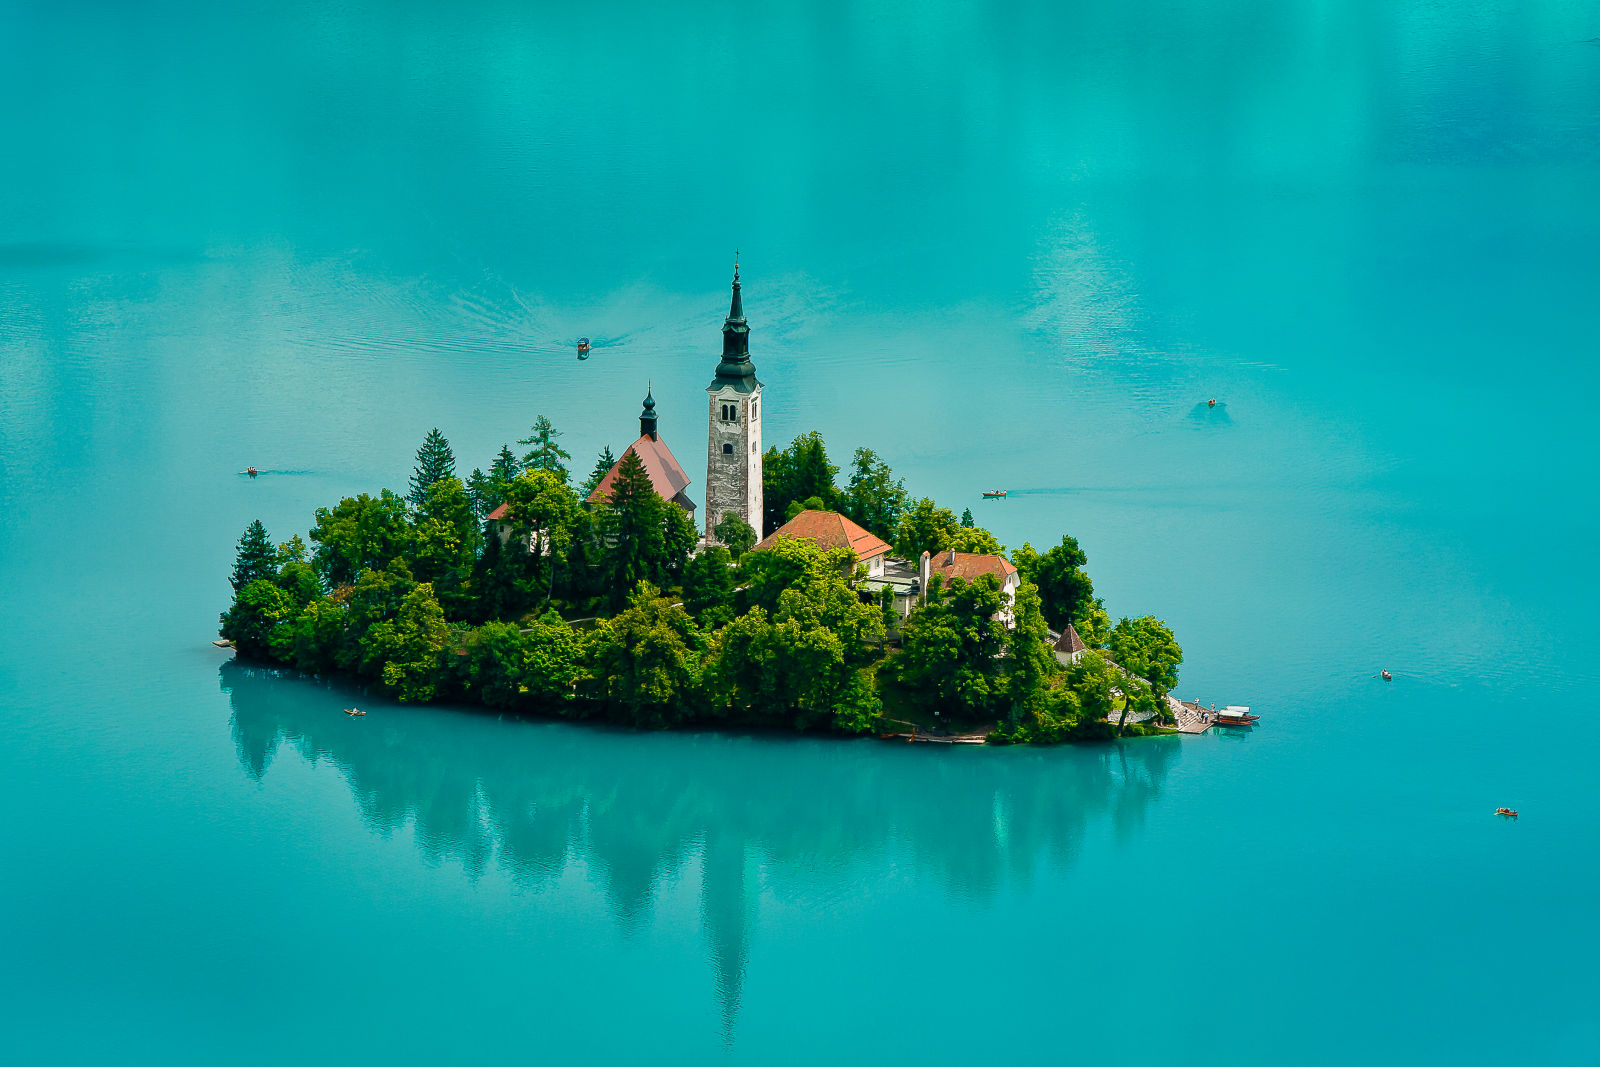 Aerial view of Bled Island in the middle of Lake Bled, Slovenia